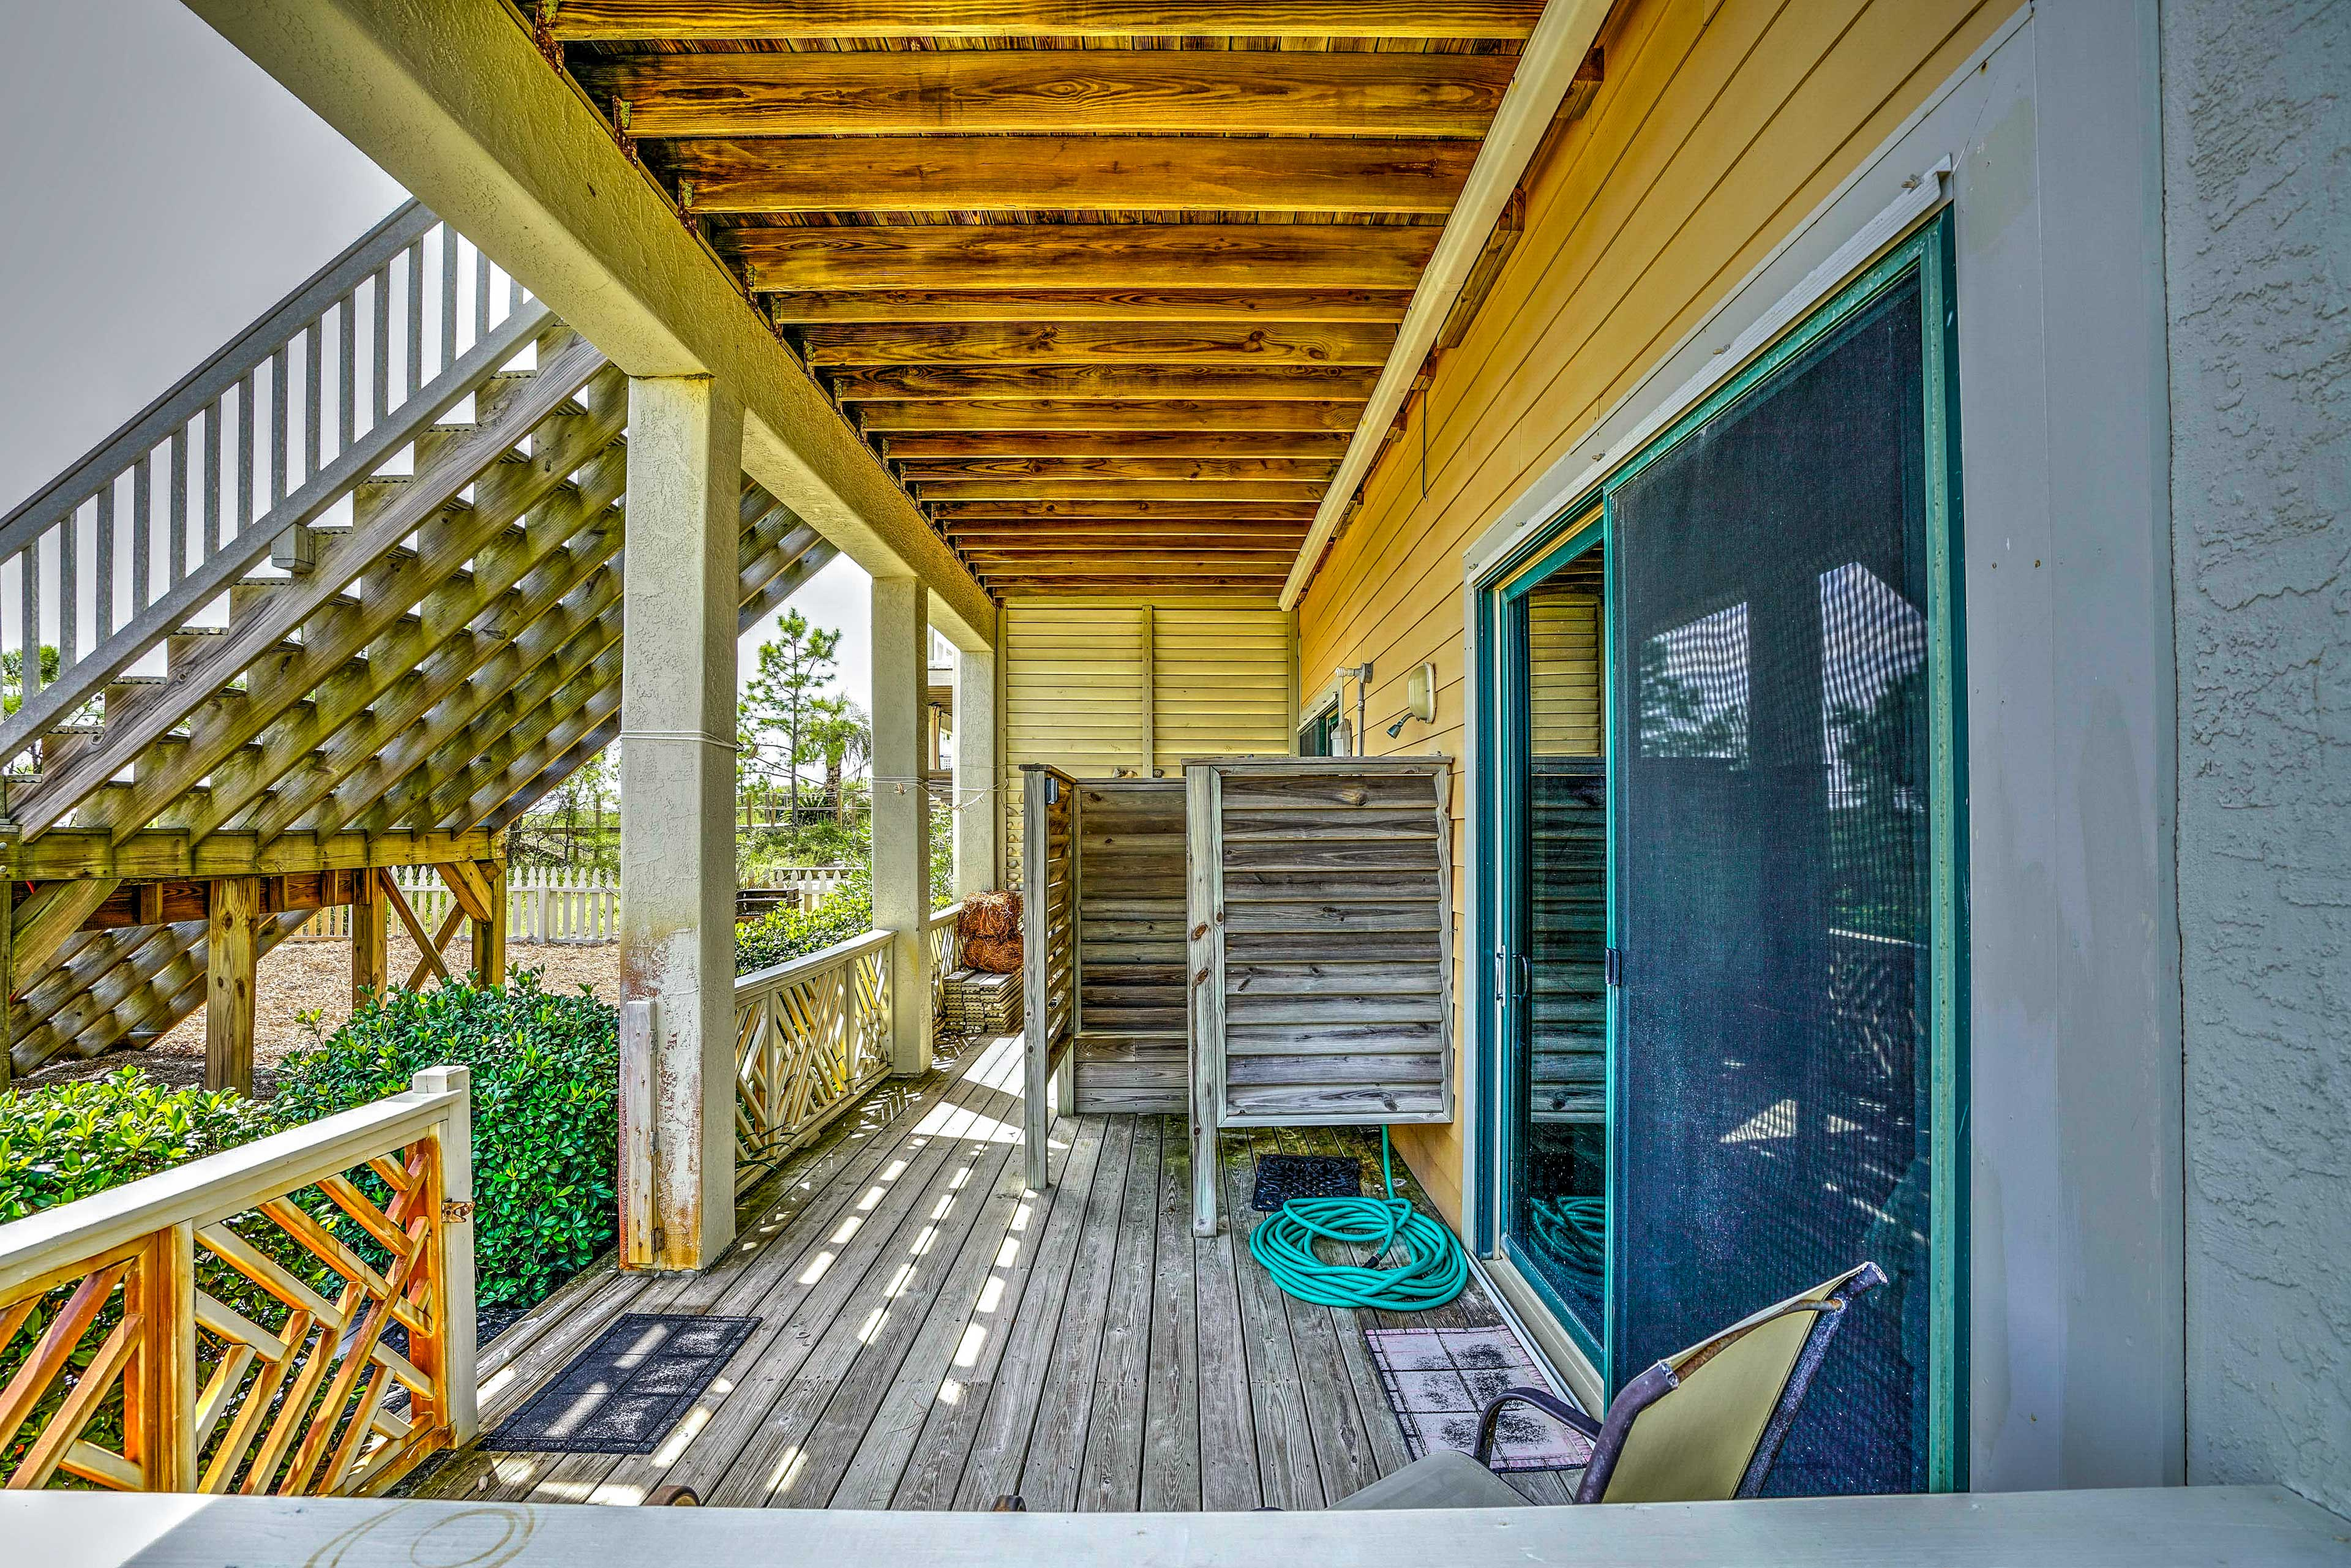 Step out onto the patio to get to the beach.